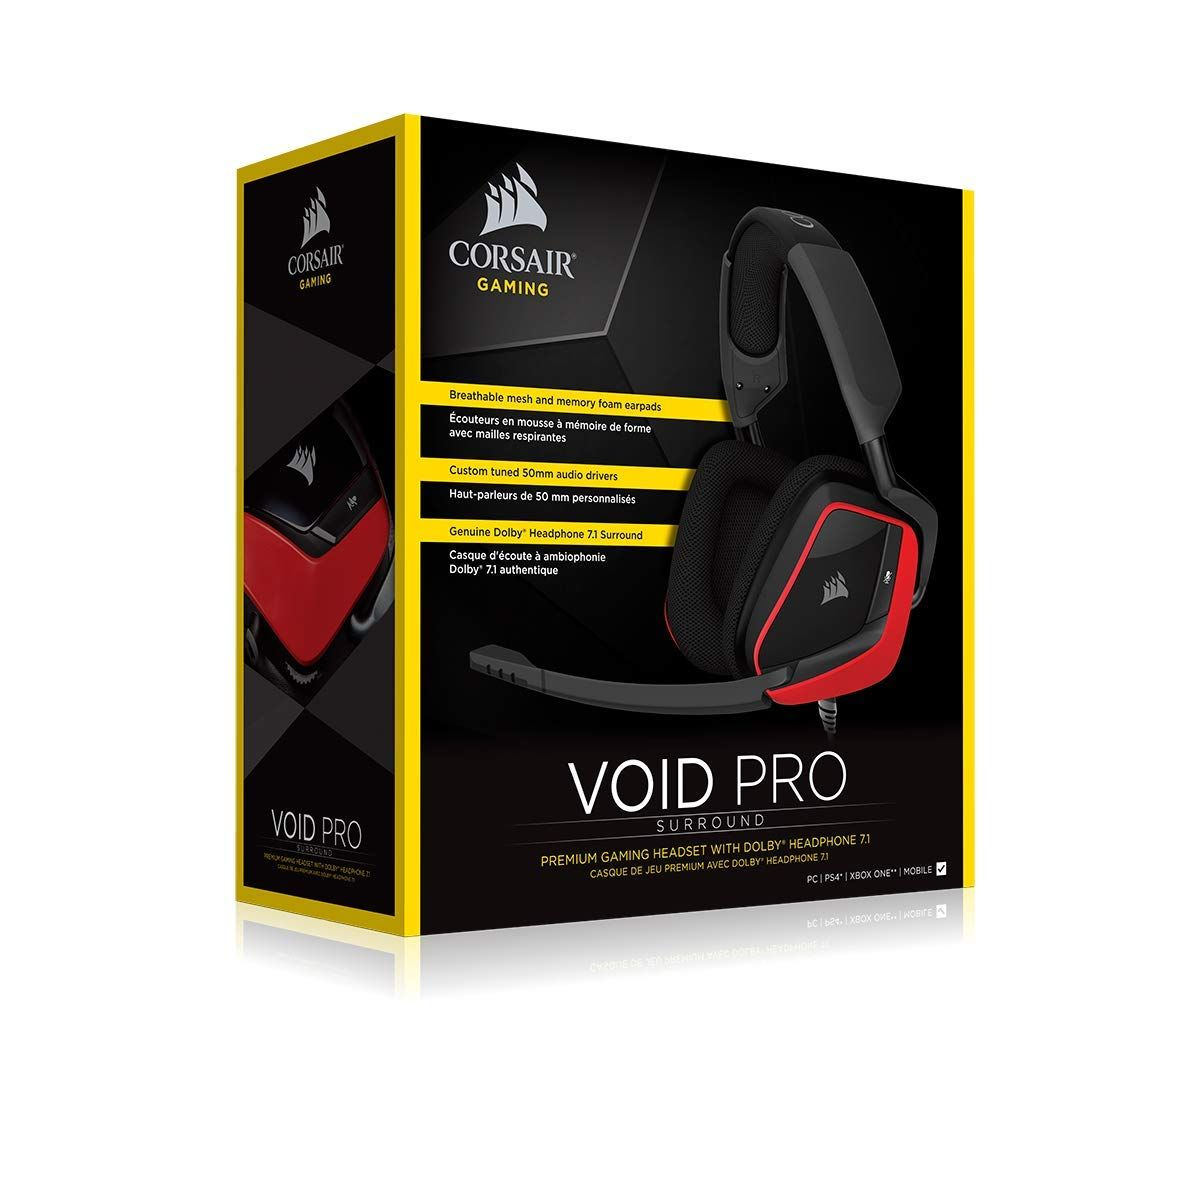 1a1d612edc6 CORSAIR Void PRO Surround Gaming Headset - Dolby 7.1 Surround Sound  Headphones for PC - Works with Xbox One, PS4, Nintendo Switch, iOS and  Android - Red ...